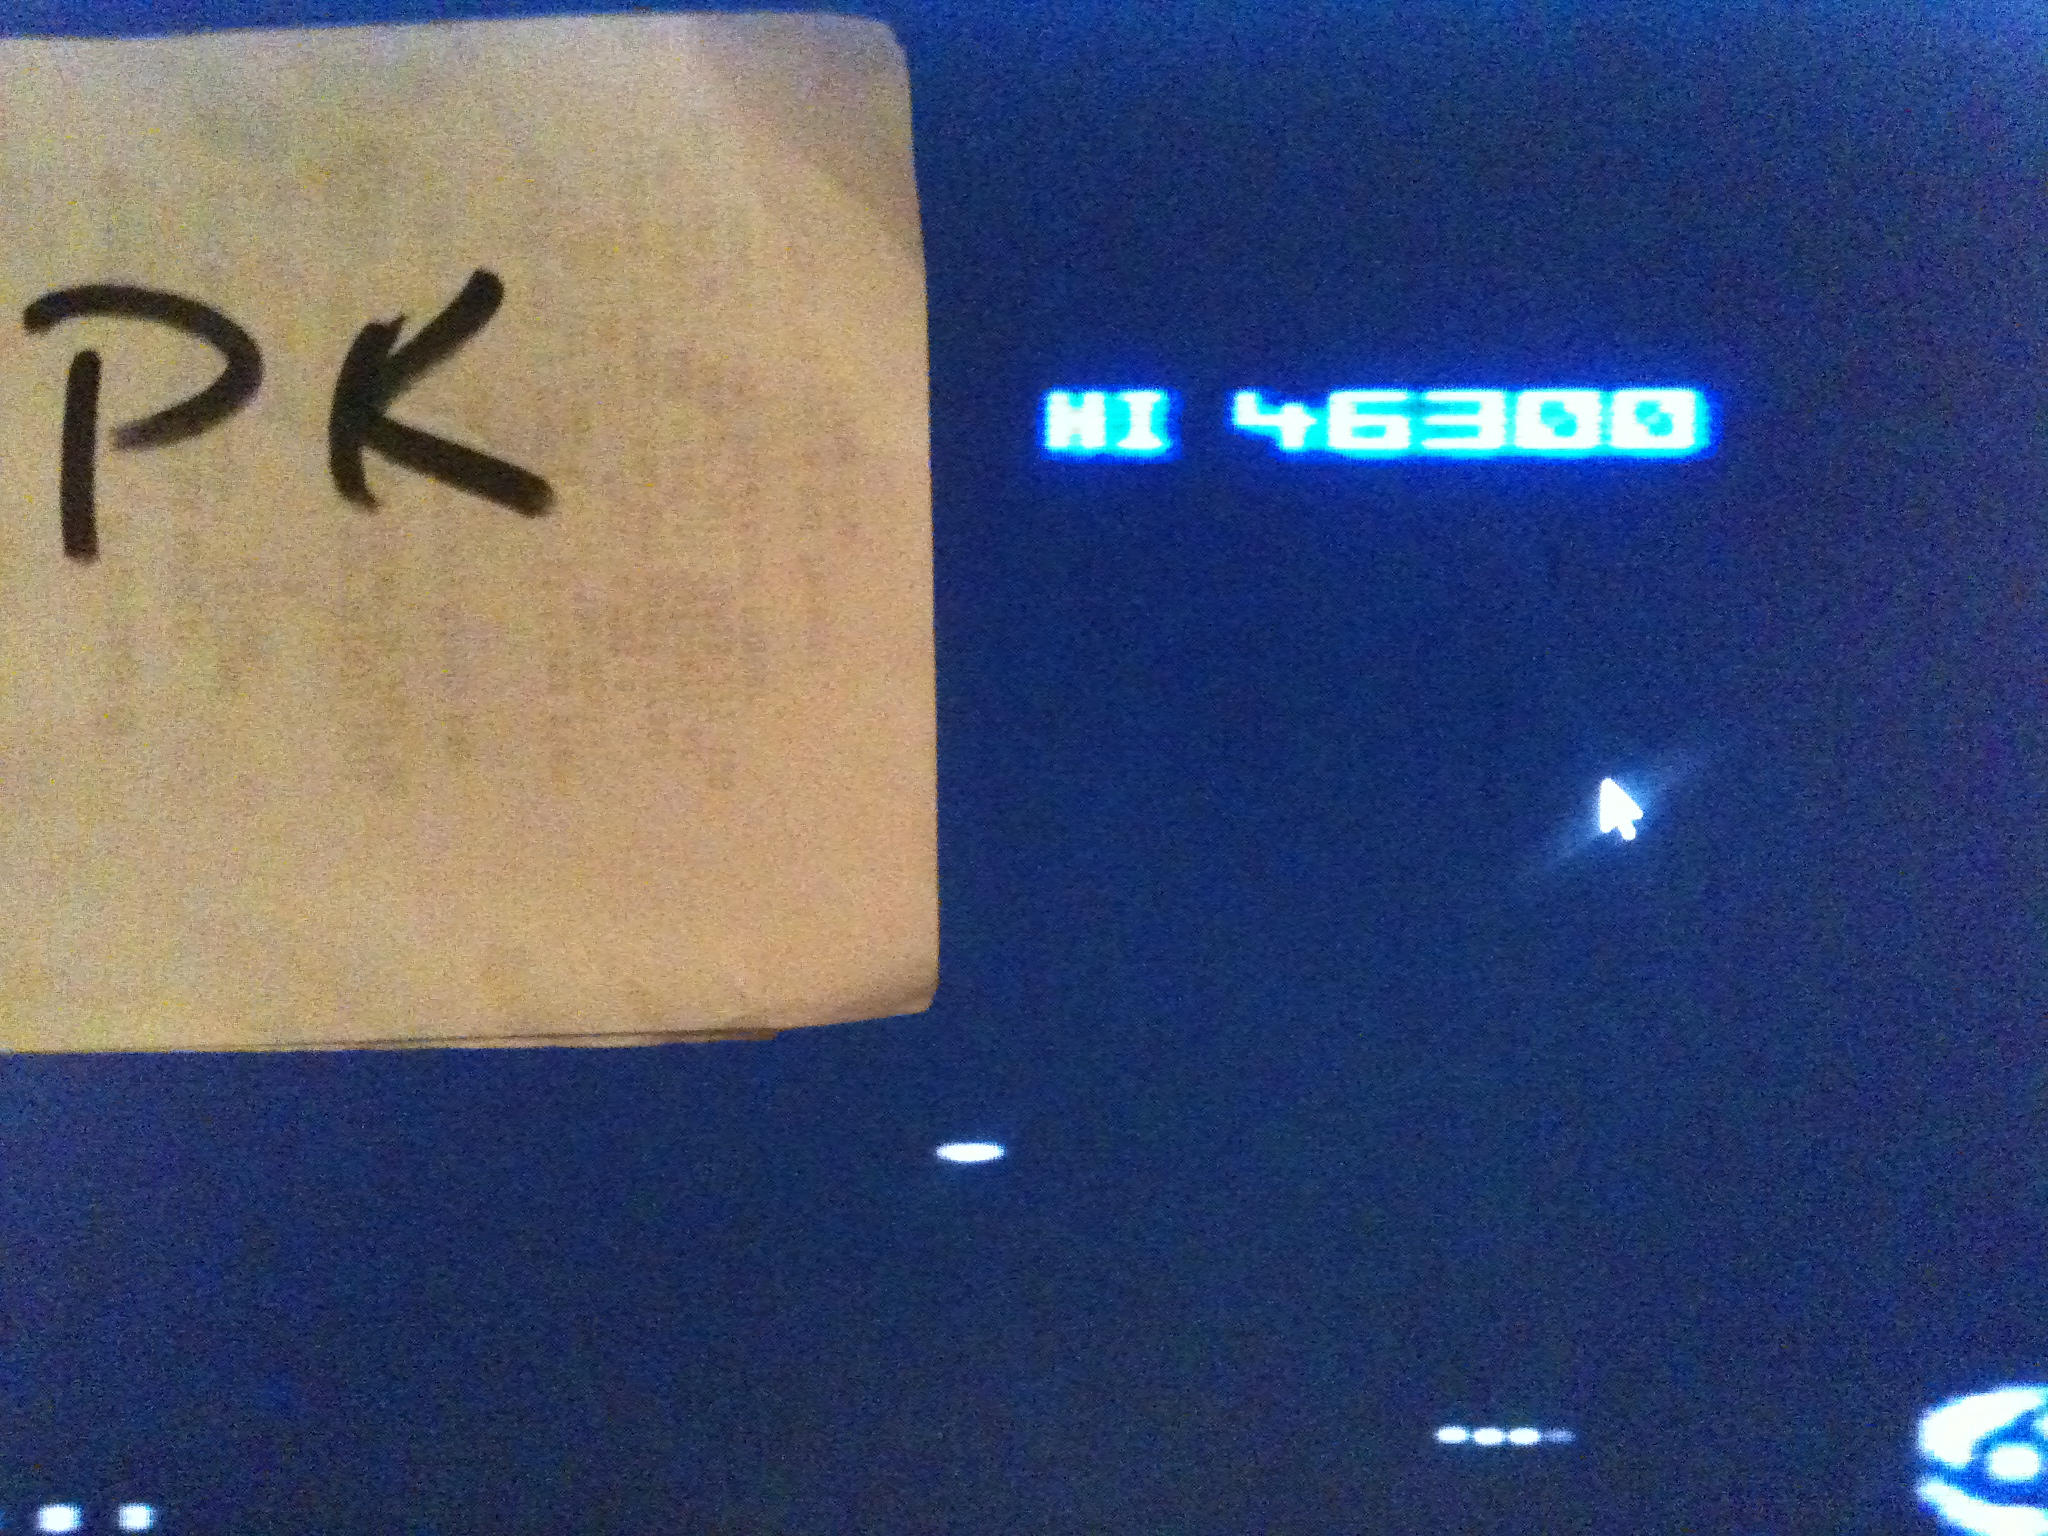 kernzy: Gradius (Commodore 64 Emulated) 46,300 points on 2015-09-26 10:24:50